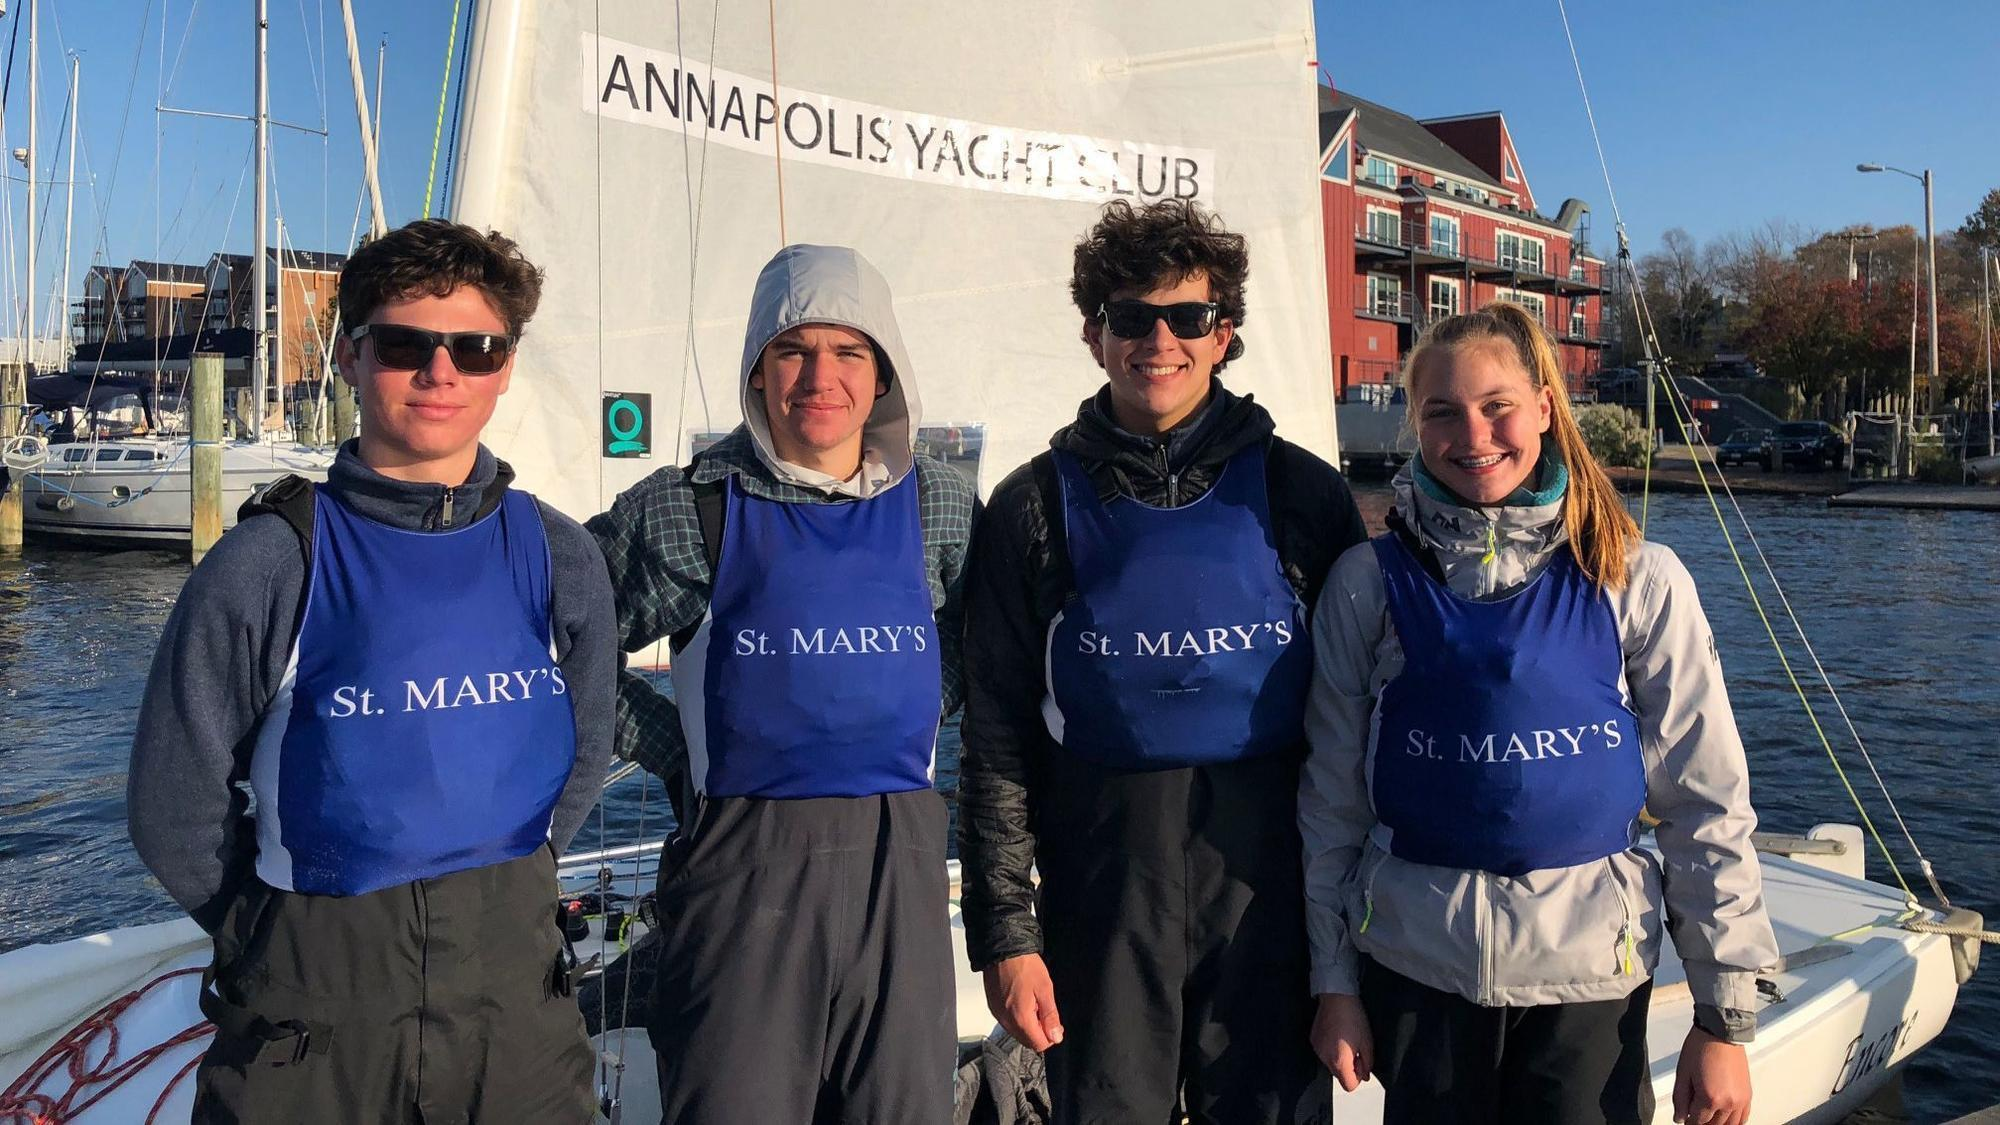 St. Mary's places fourth at high school keelboat nationals